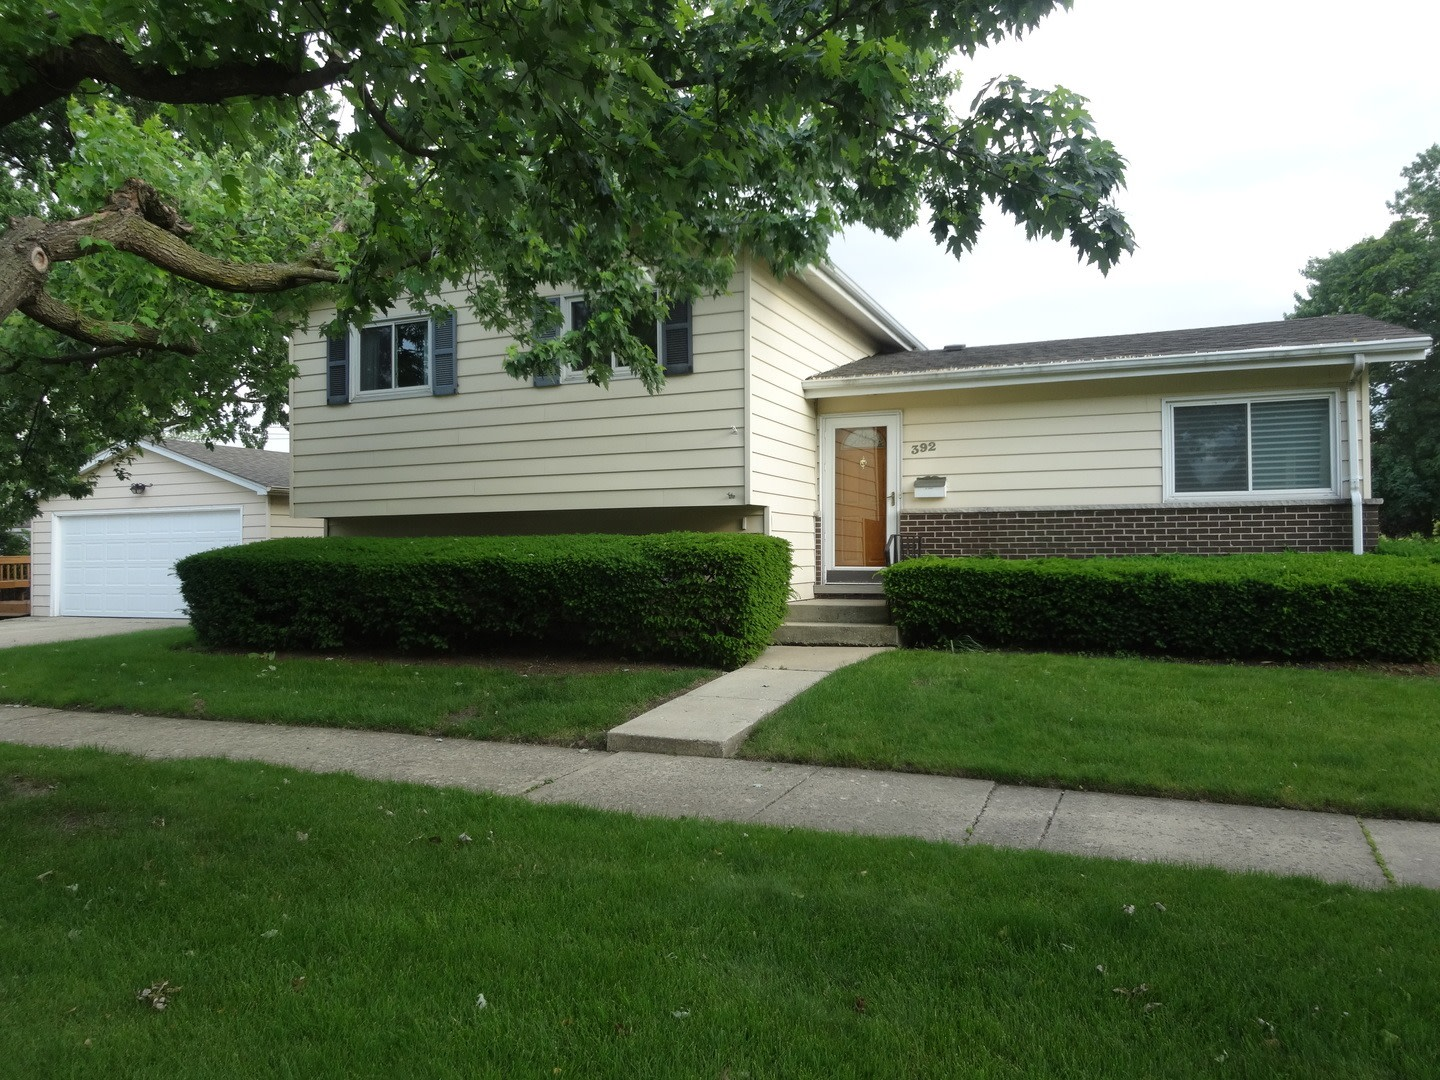 Craigslist House For Rent In Chicago Il | House For Rent